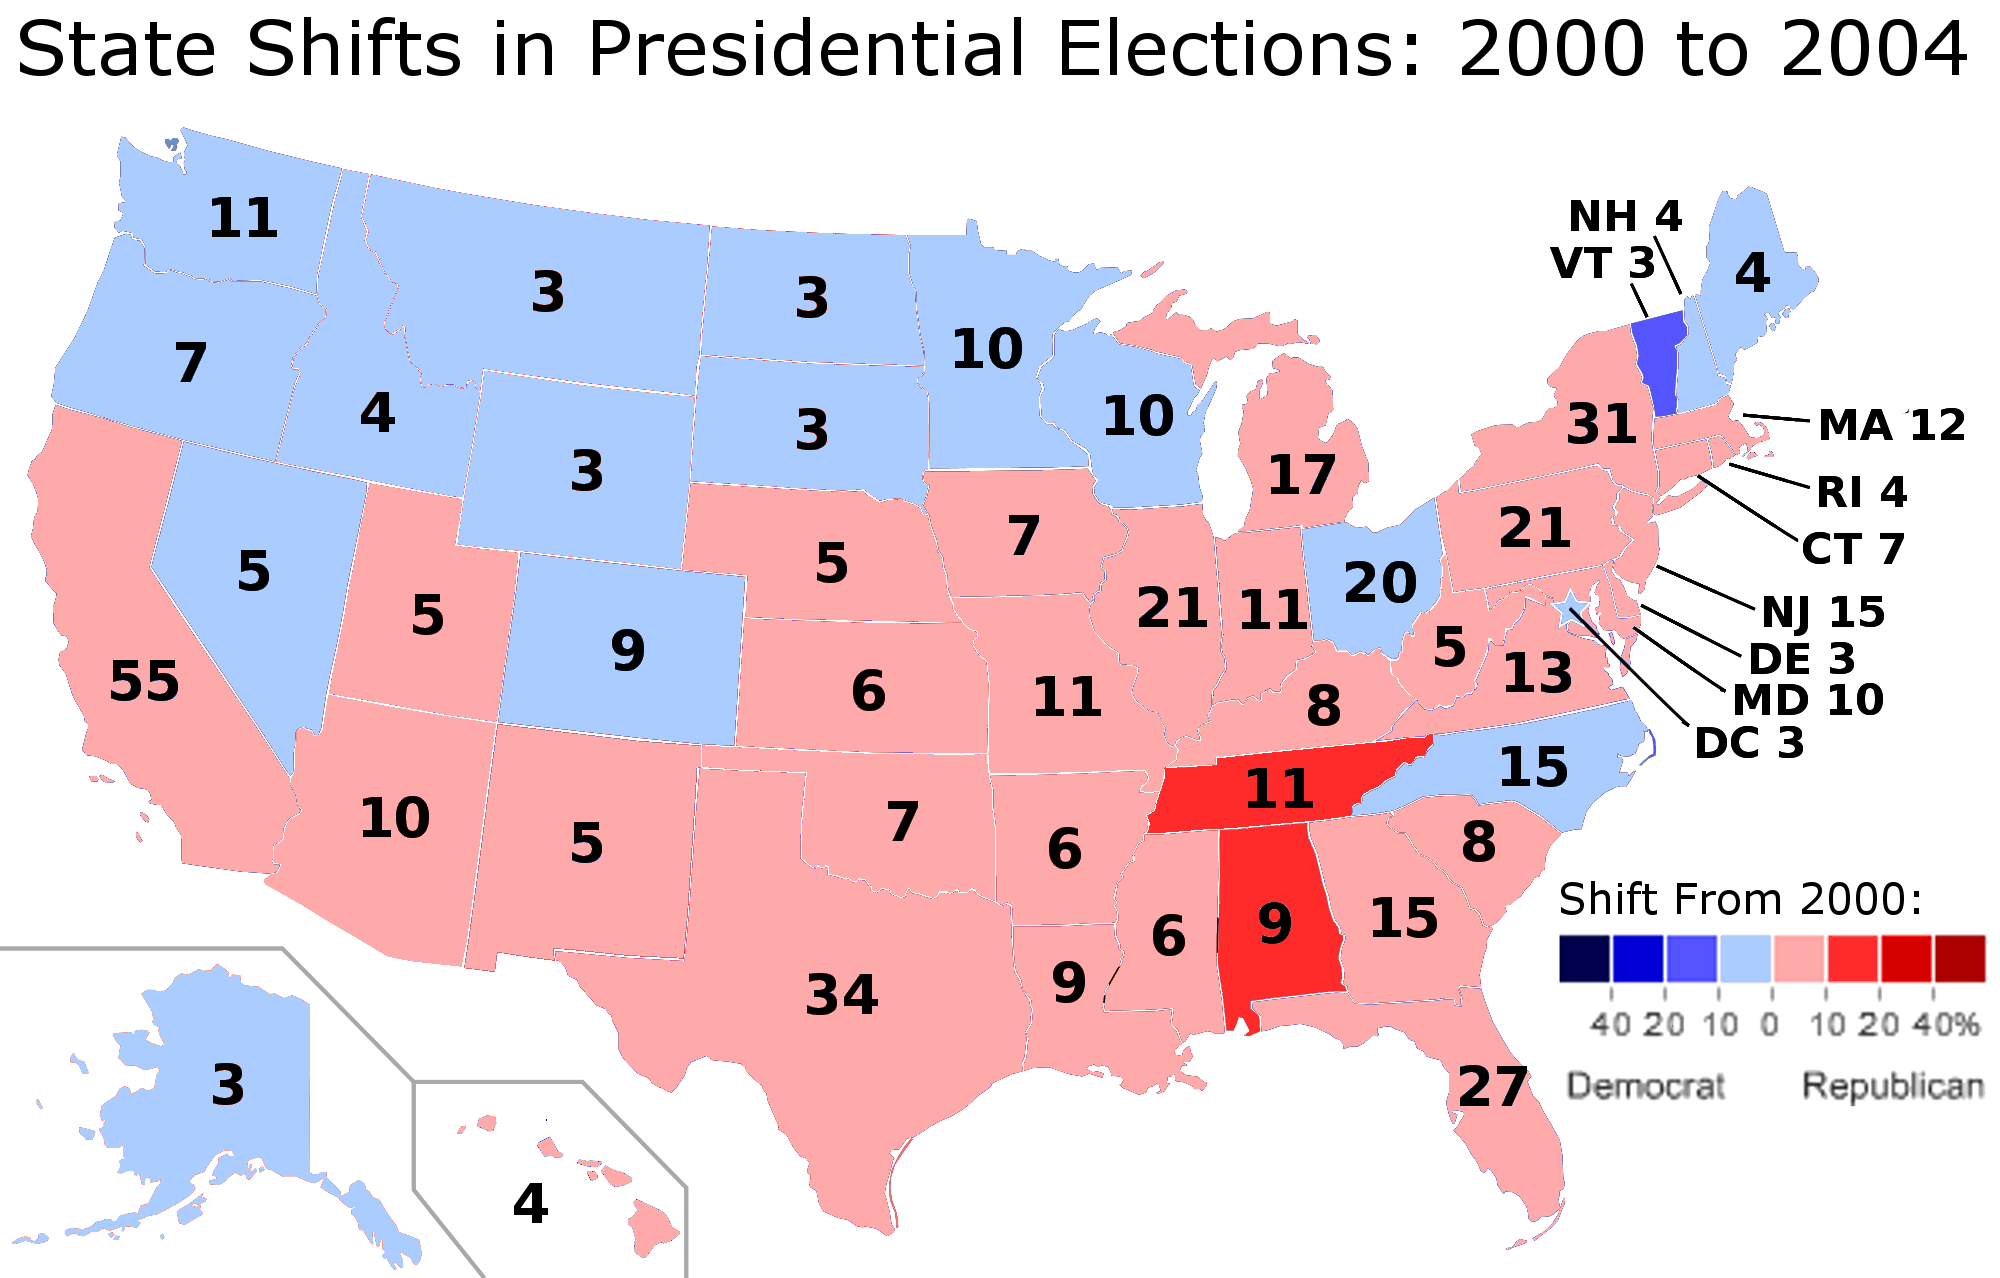 an analysis of 2000 presidential campaigns thoughts in united states of america Zeroing in on the frenzied 36 days that followed the 2000 election, david   shortly after the presidential vote in november 2000, two law clerks at the united  states  judges resolved legal disputes by nonpartisan analysis of neutral  principles  to devastating effect in the media, stunning the gore team, which  thought its.